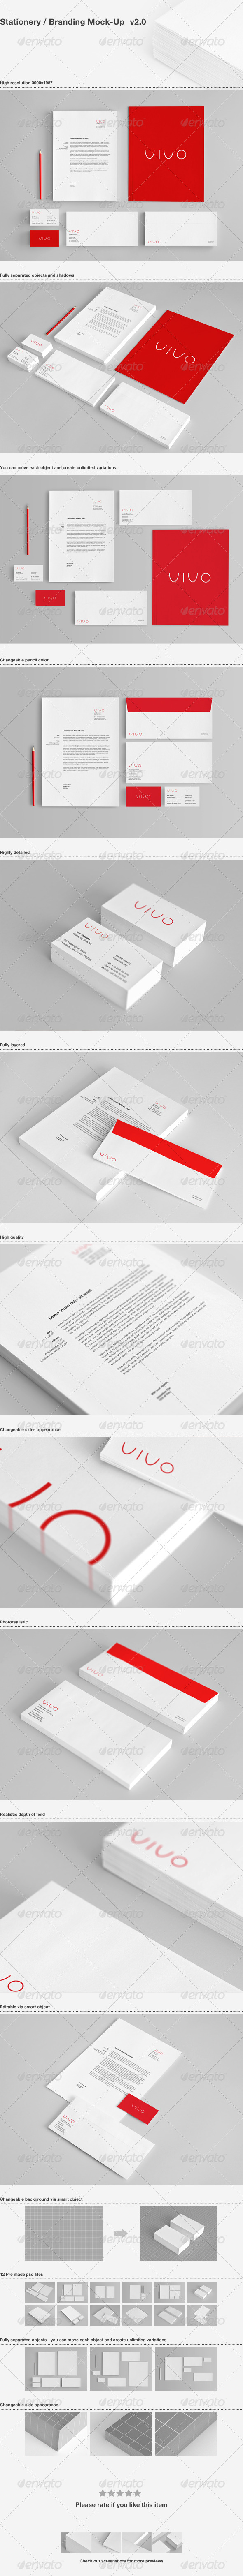 Stationery / Branding Mock-Up - Stationery Print